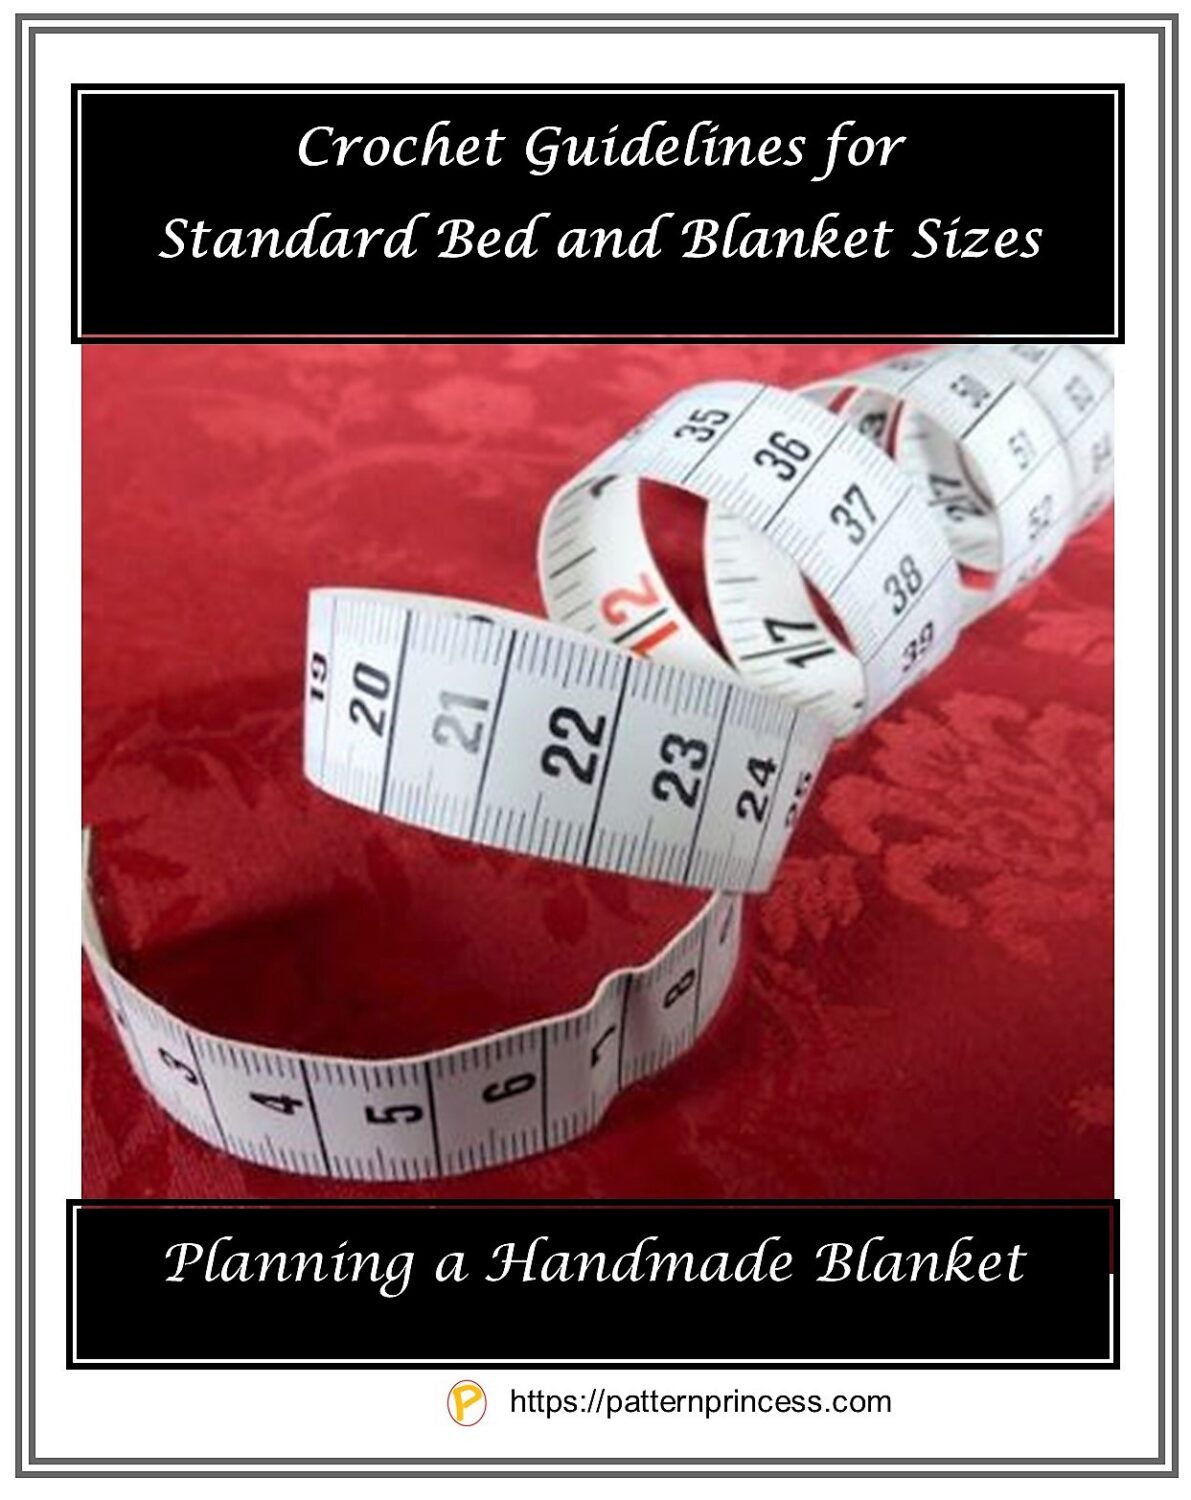 Crochet Guidelines for Standard Bed and Blanket Sizes